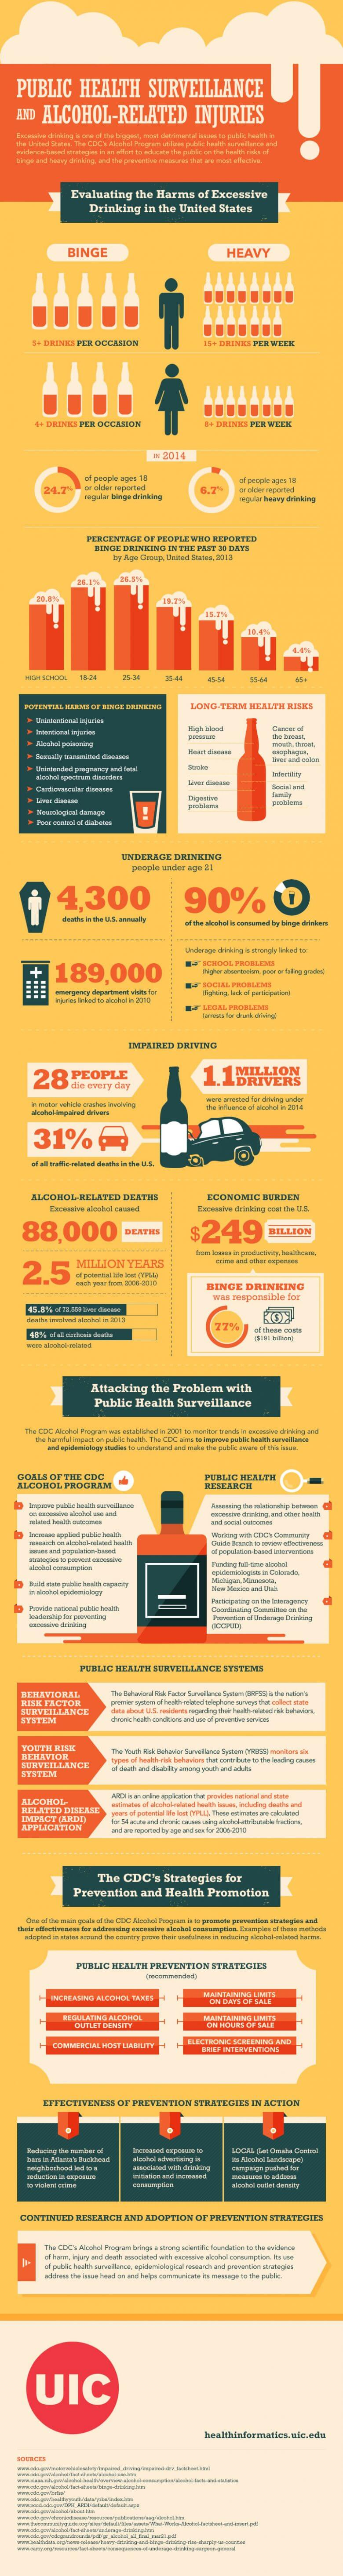 Infograph about Public Health Surveillance and Alcohol-Related Injuries